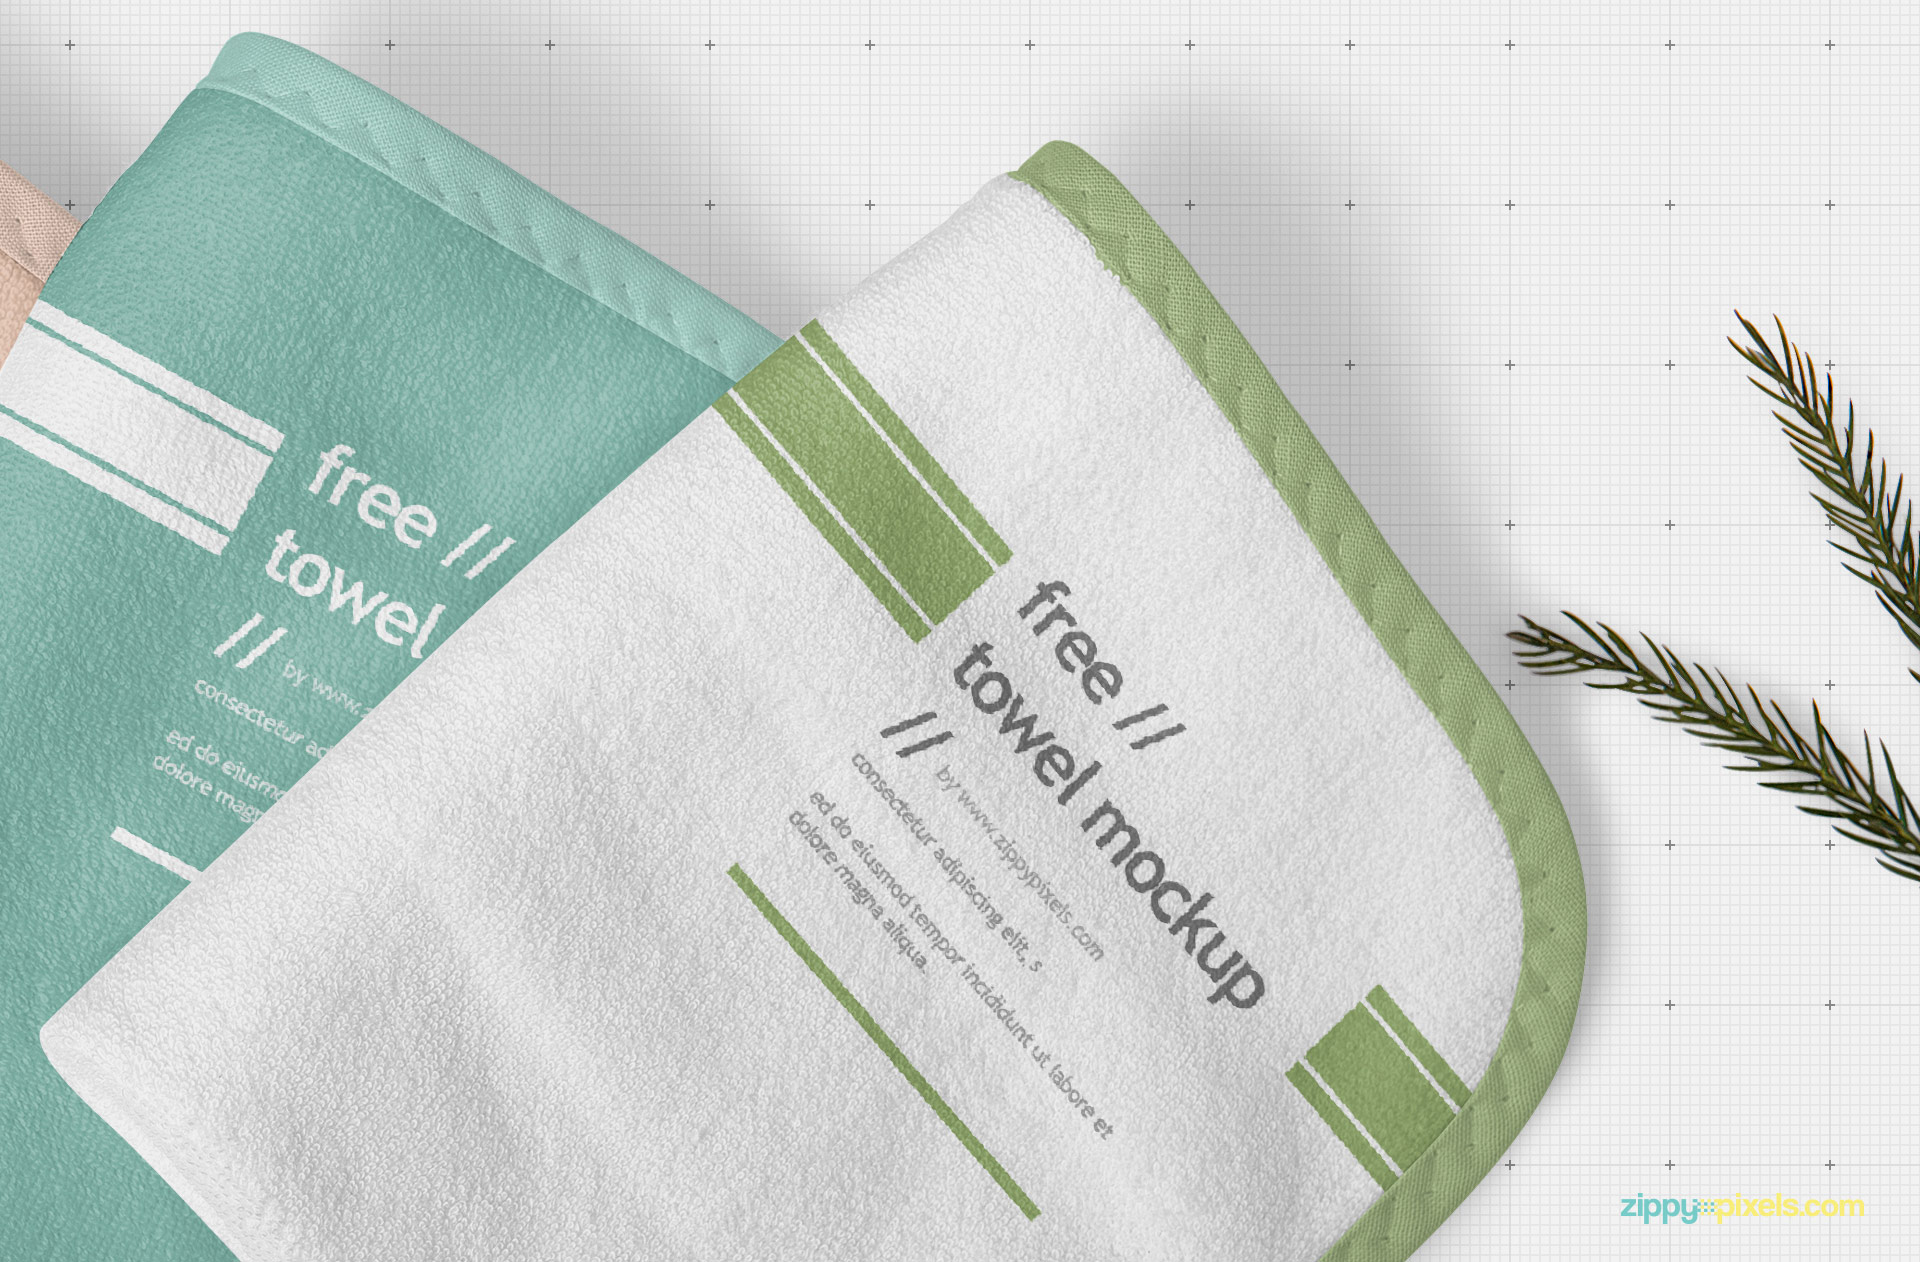 Adjust the shadows and colors of the towel mockup.